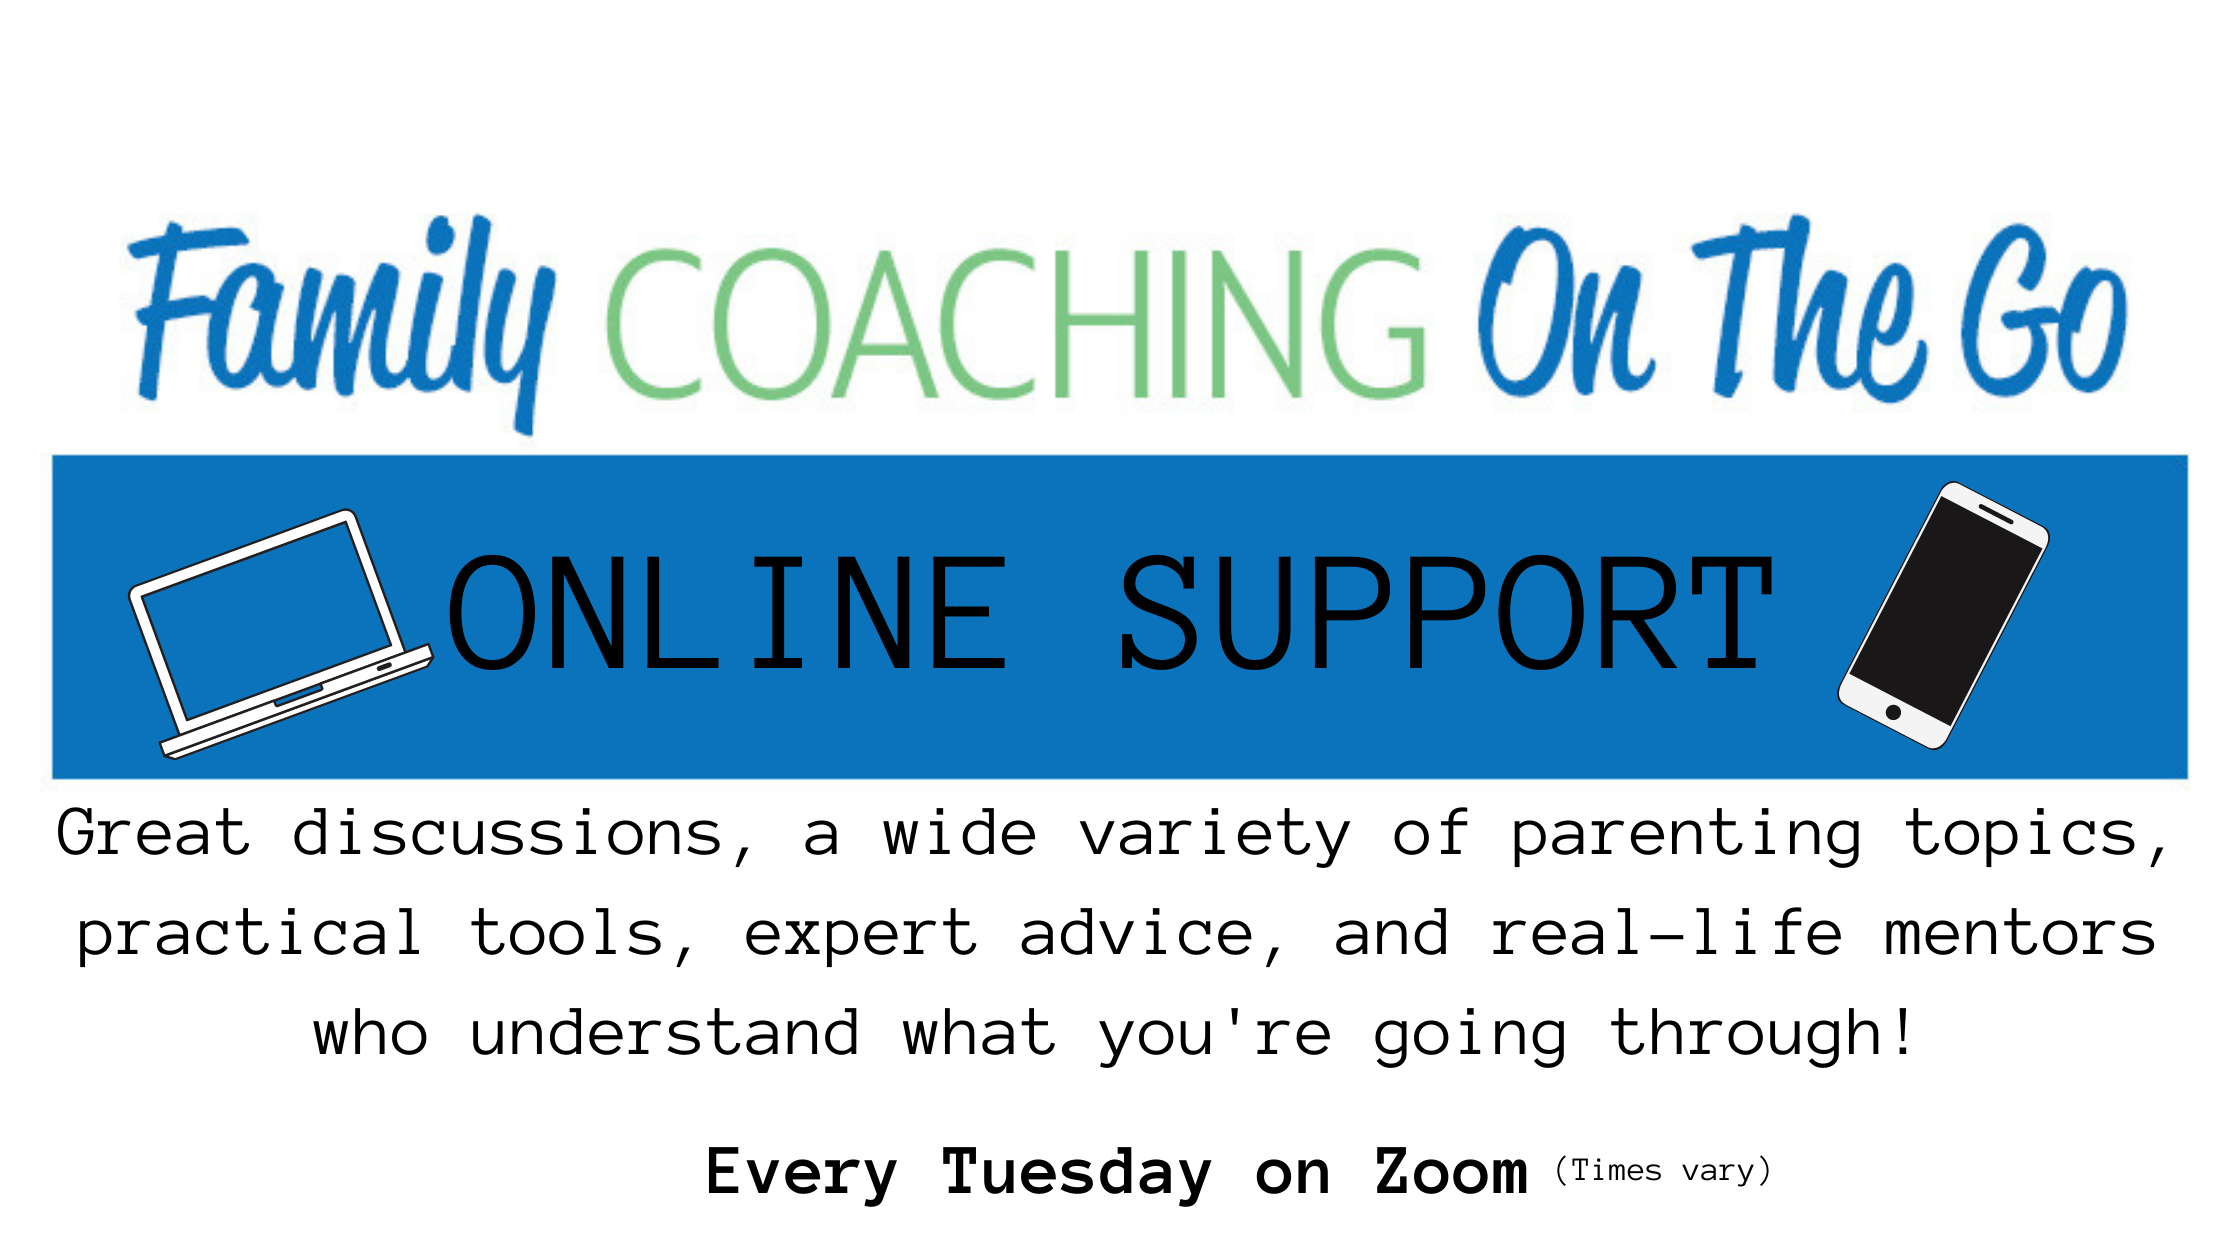 Family Coaching On the Go ONLINE SUPPORT